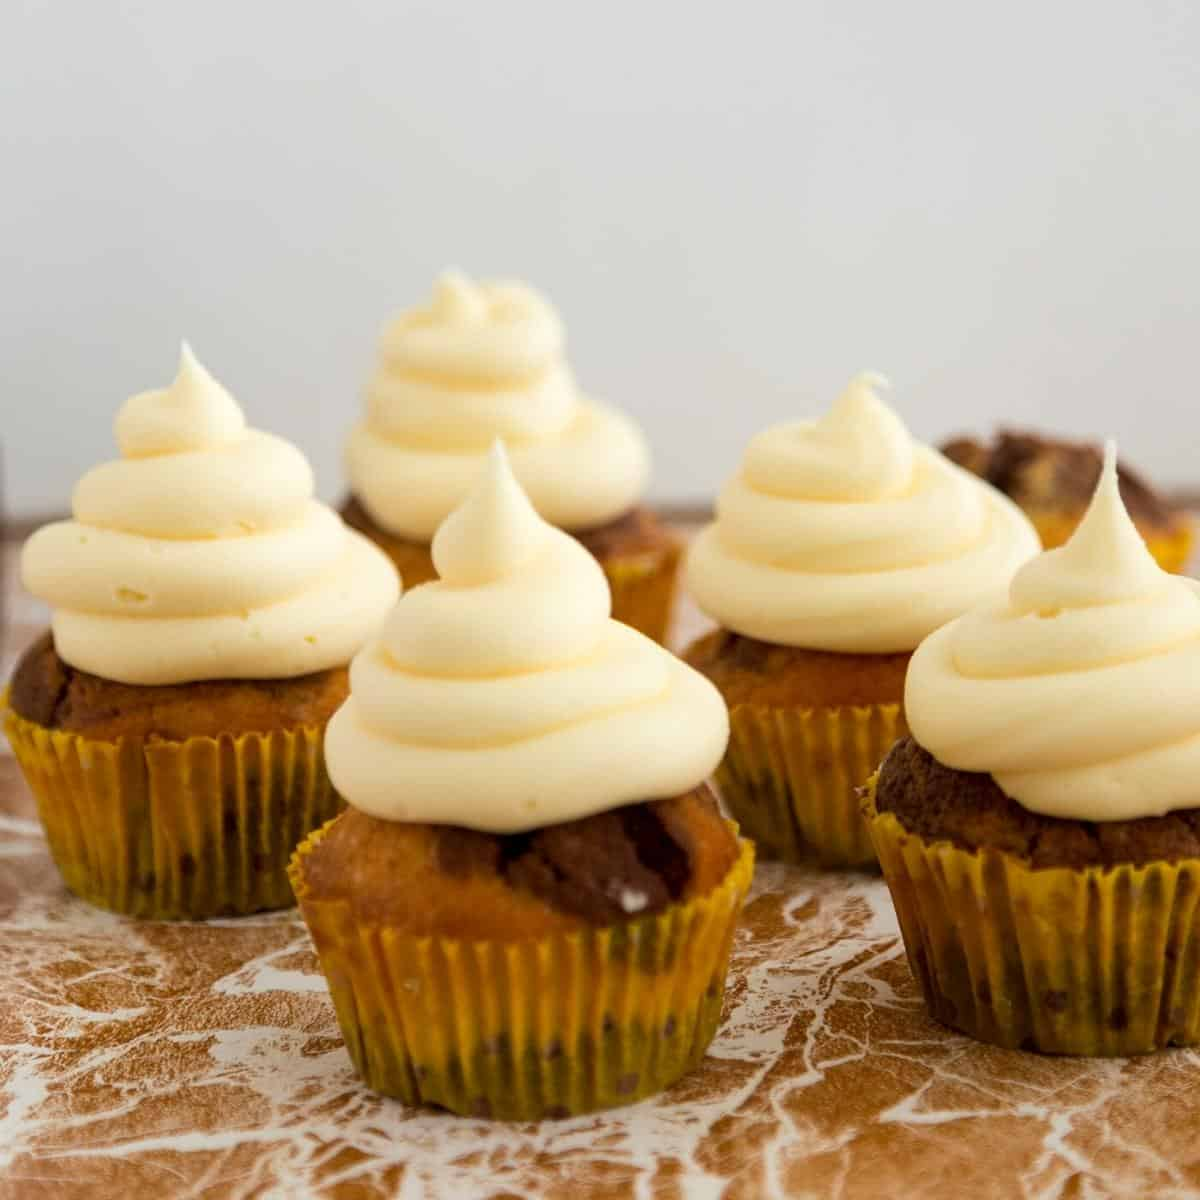 Cupcakes with German Custard Frosting.